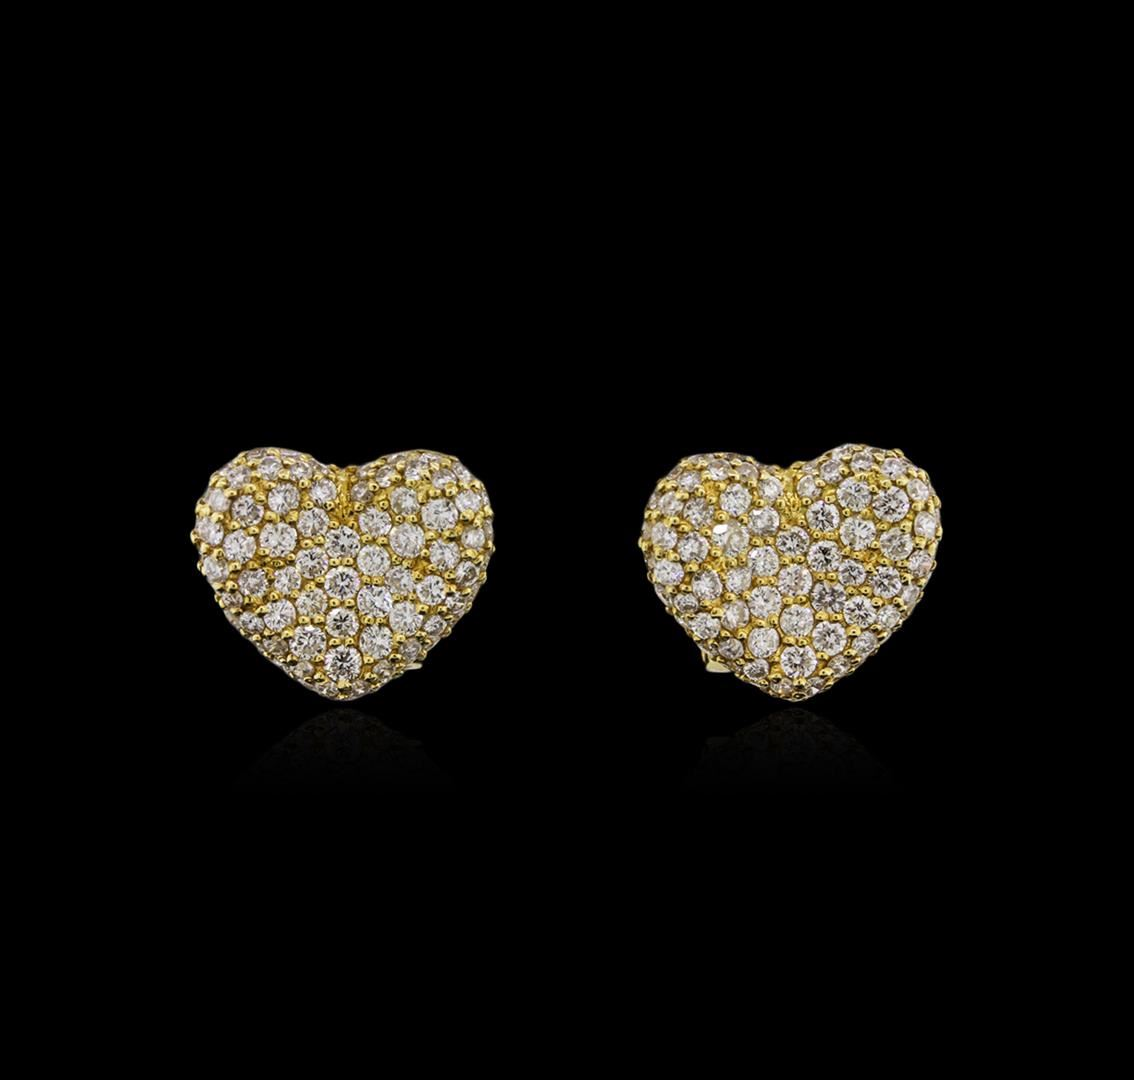 Jewelry Auctions: 18KT Yellow Gold Diamond Earrings